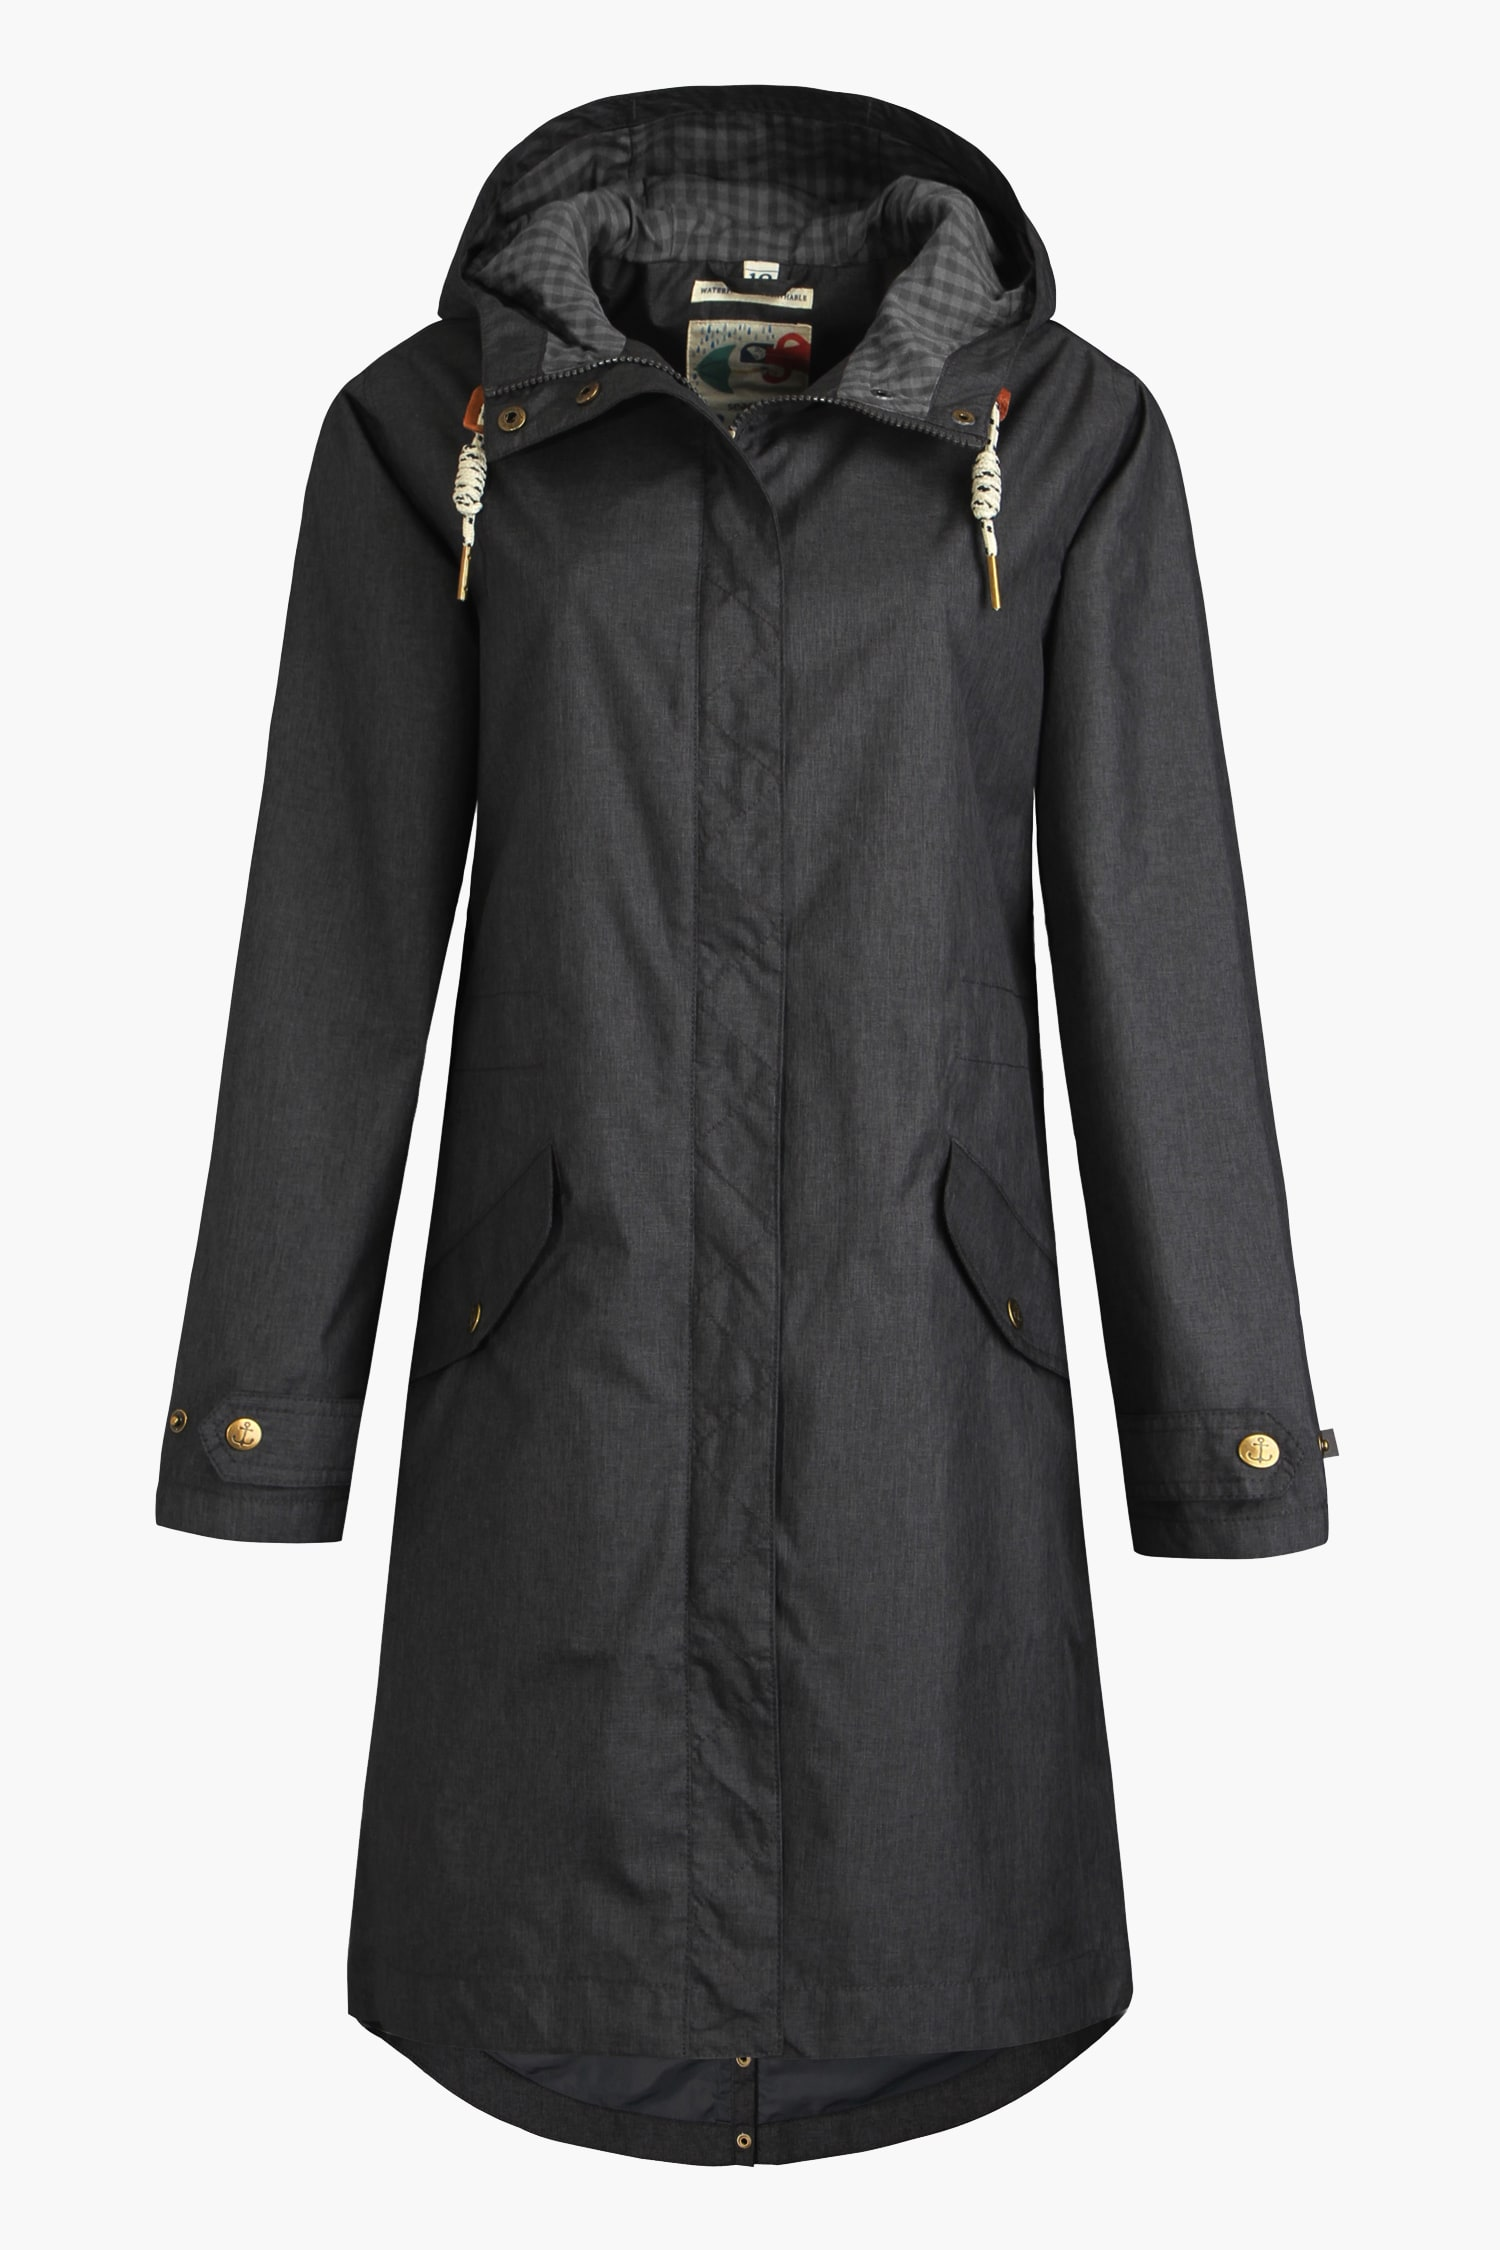 Hellweathers Mac Long Lightweight Raincoat Seasalt